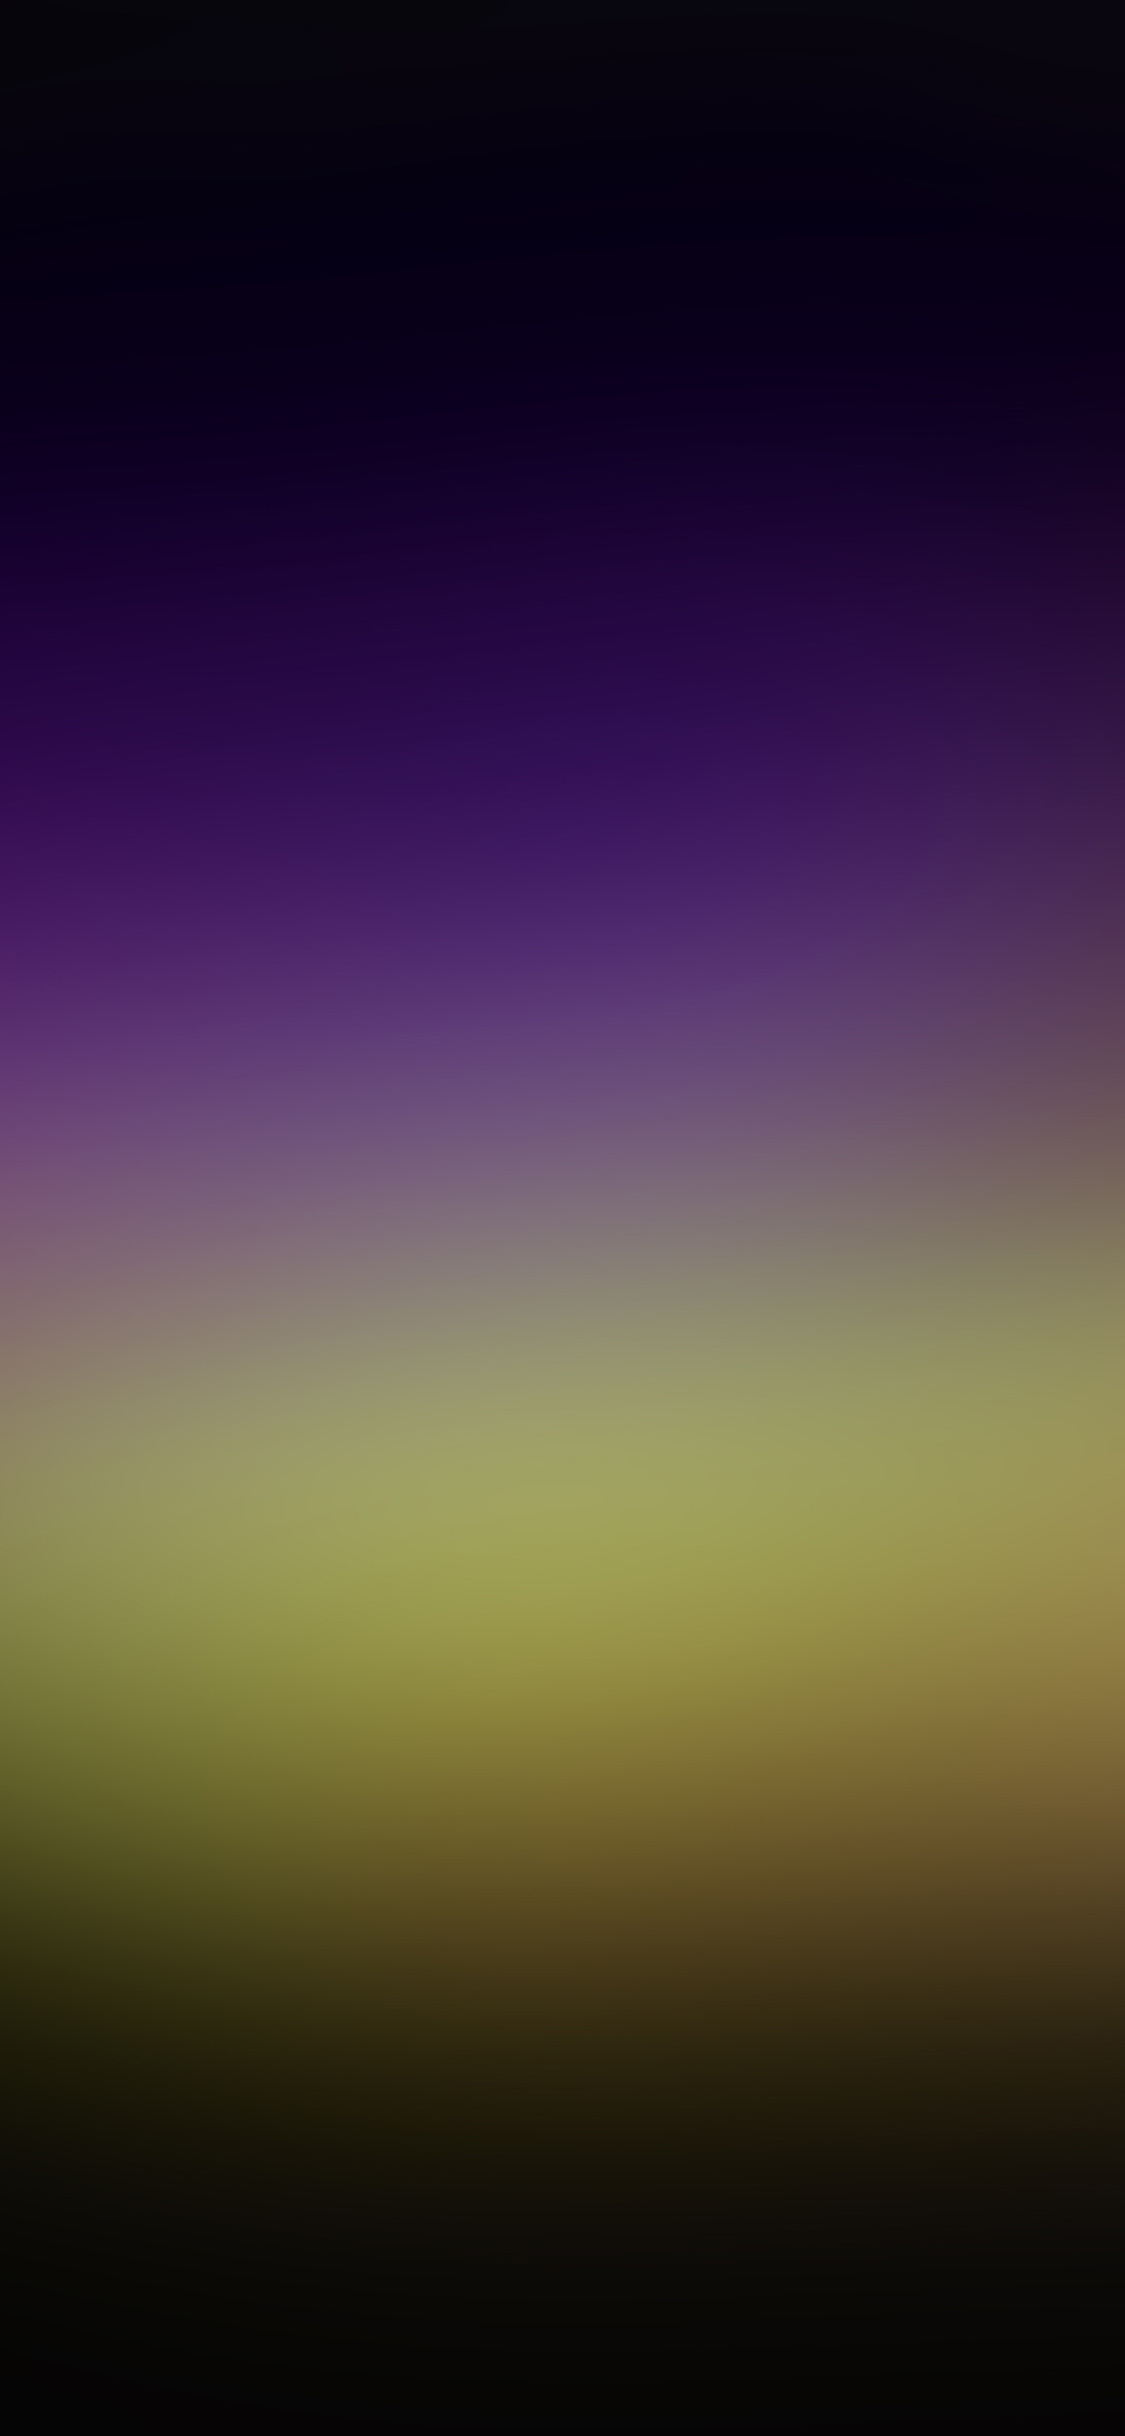 iPhoneXpapers.com-Apple-iPhone-wallpaper-sj18-sunset-aurora-night-purple-gradation-blur